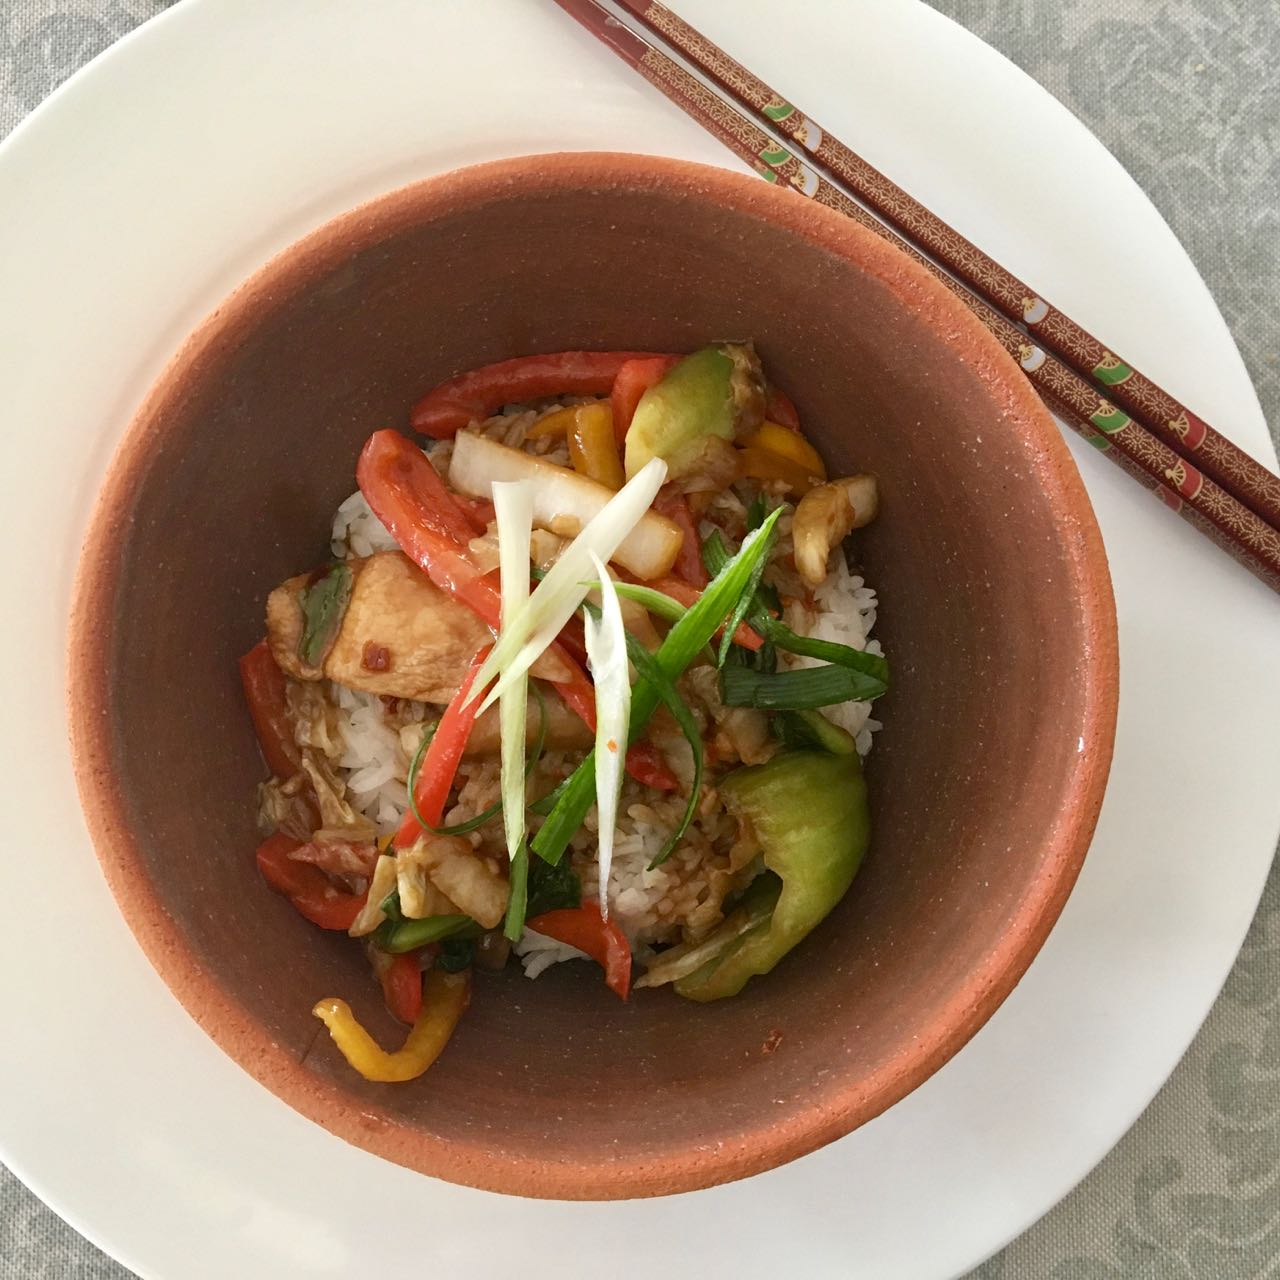 Hoisin Chicken Stir Fry with Baby Bok Choy